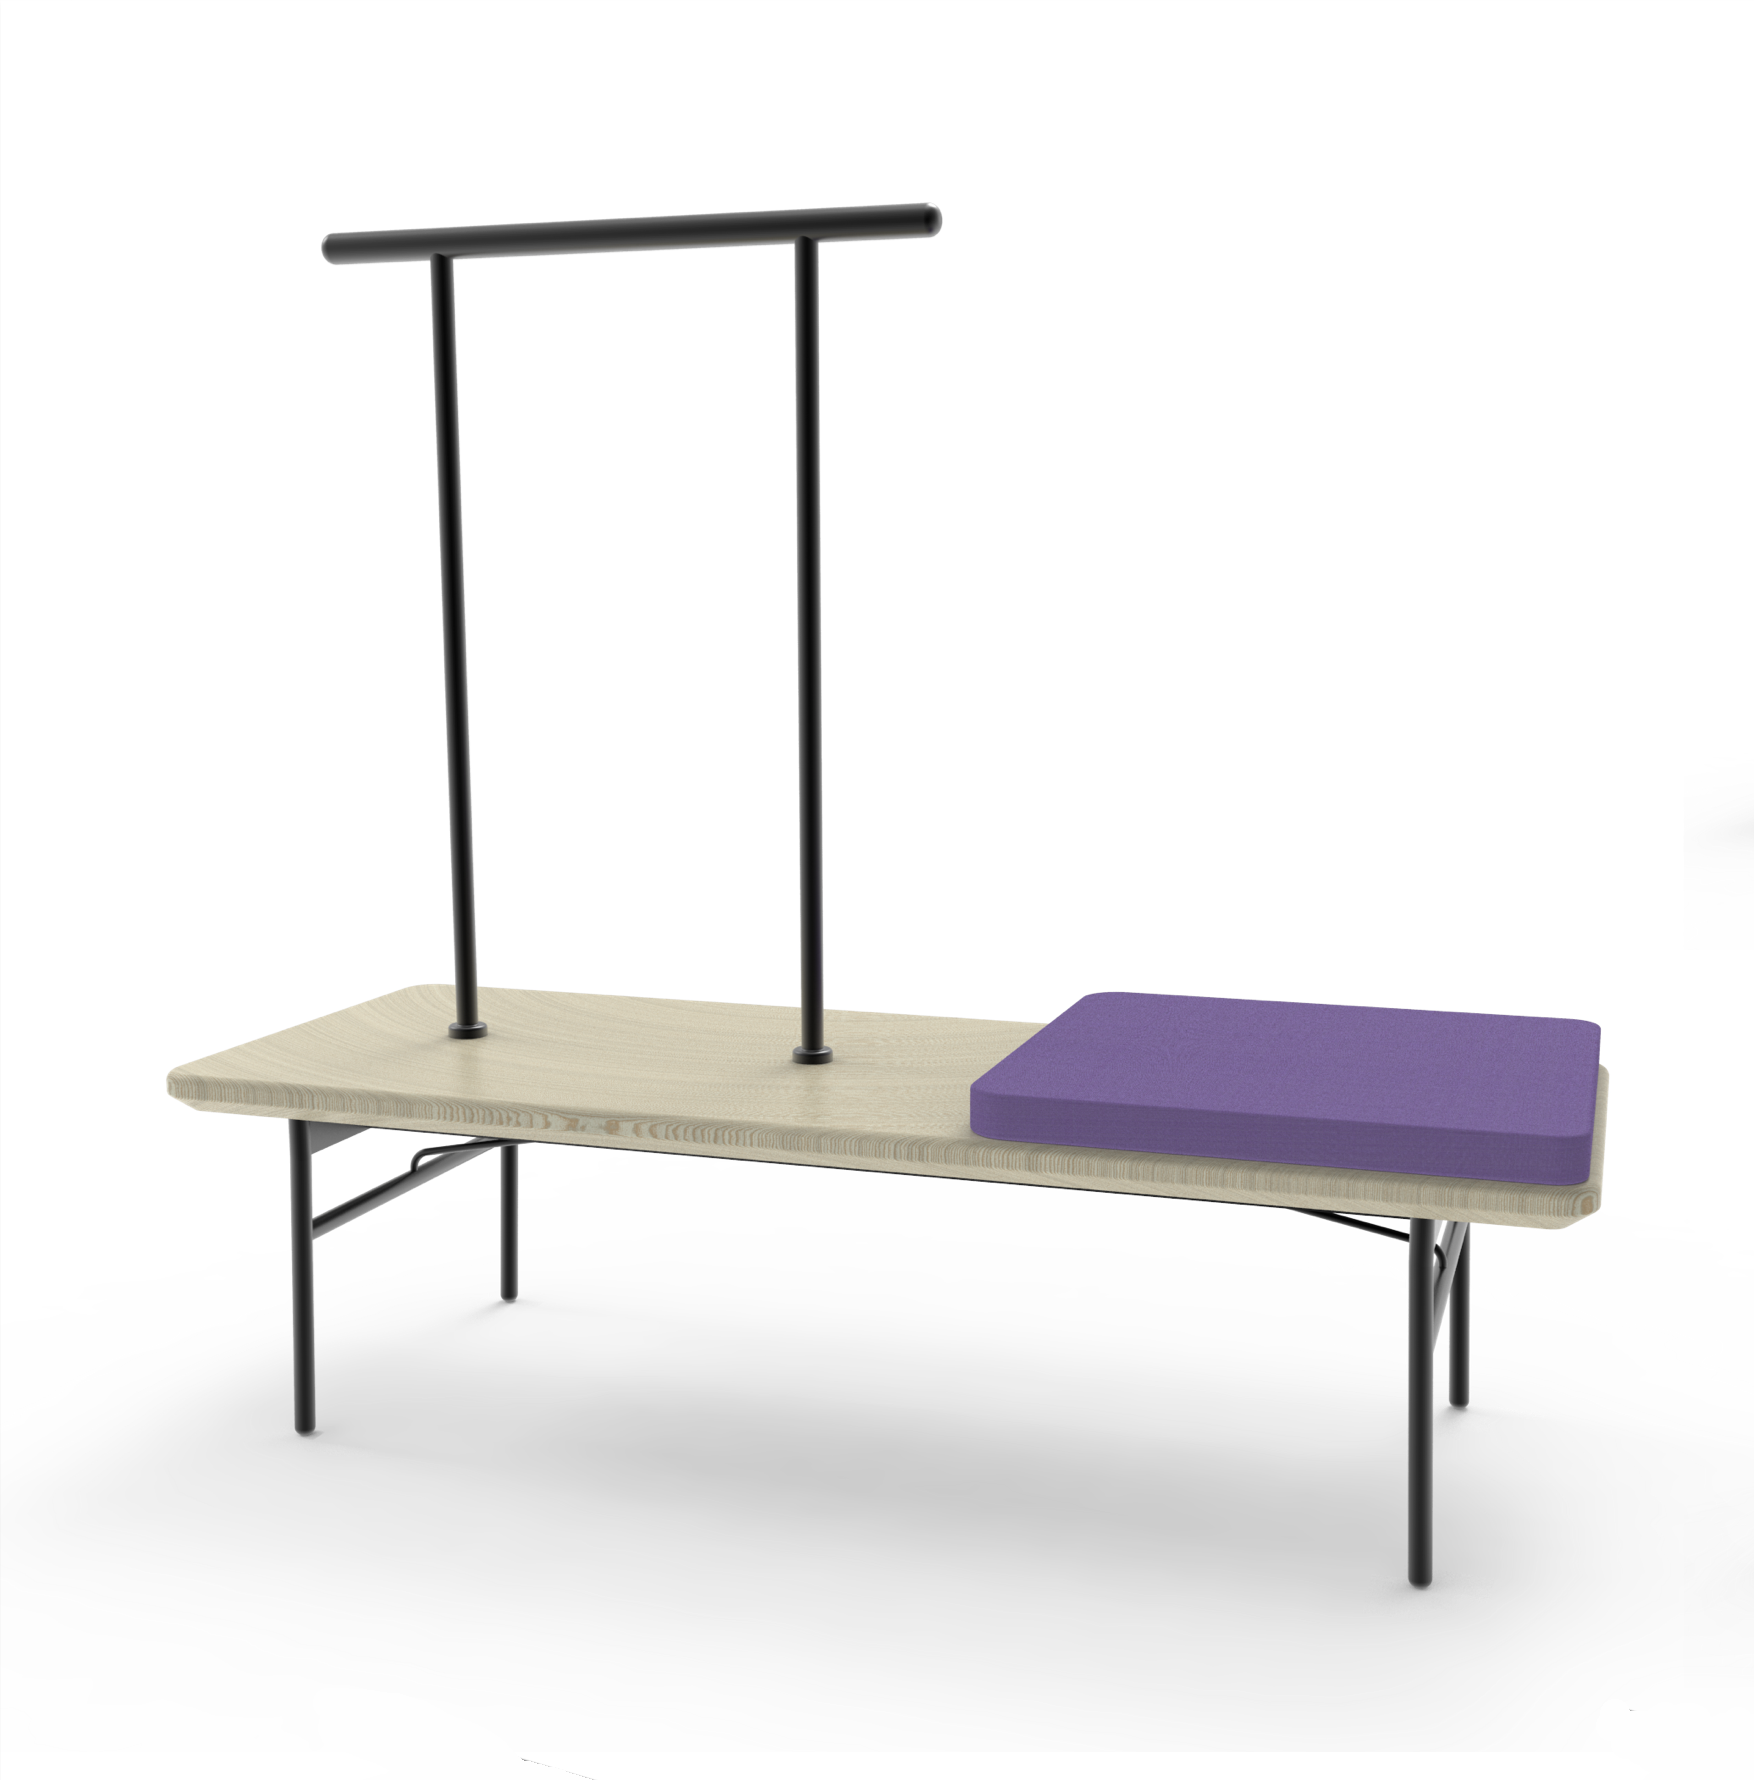 Our own furniture concept